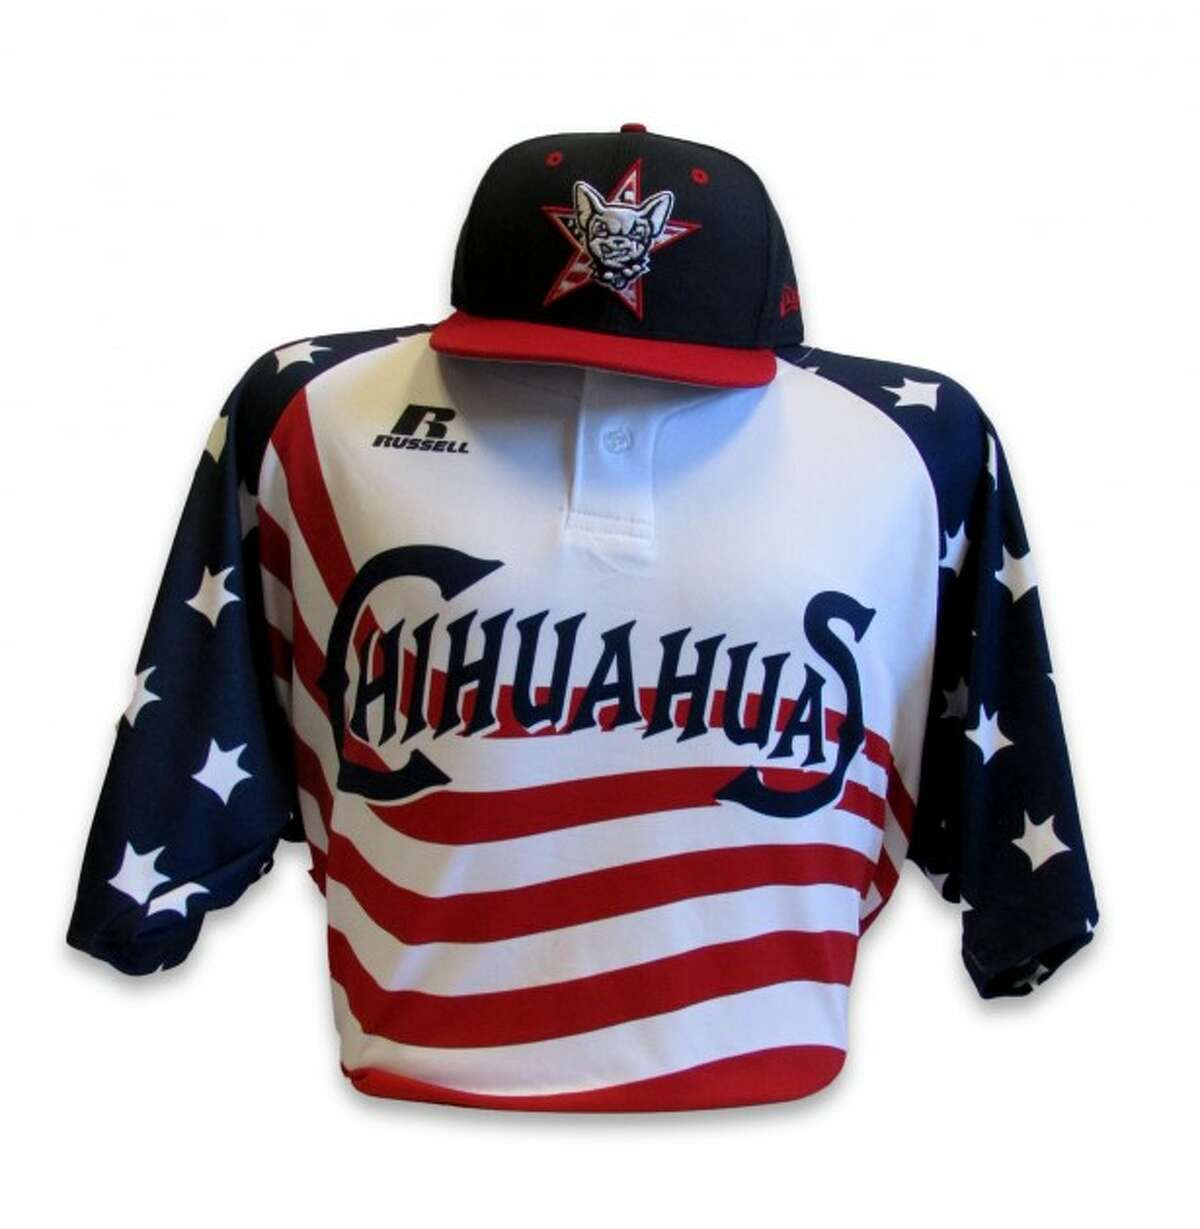 This is the jersey the Chihuahuas used for their home games on July 2 and July 3 against the Albuquerque Isotopes.